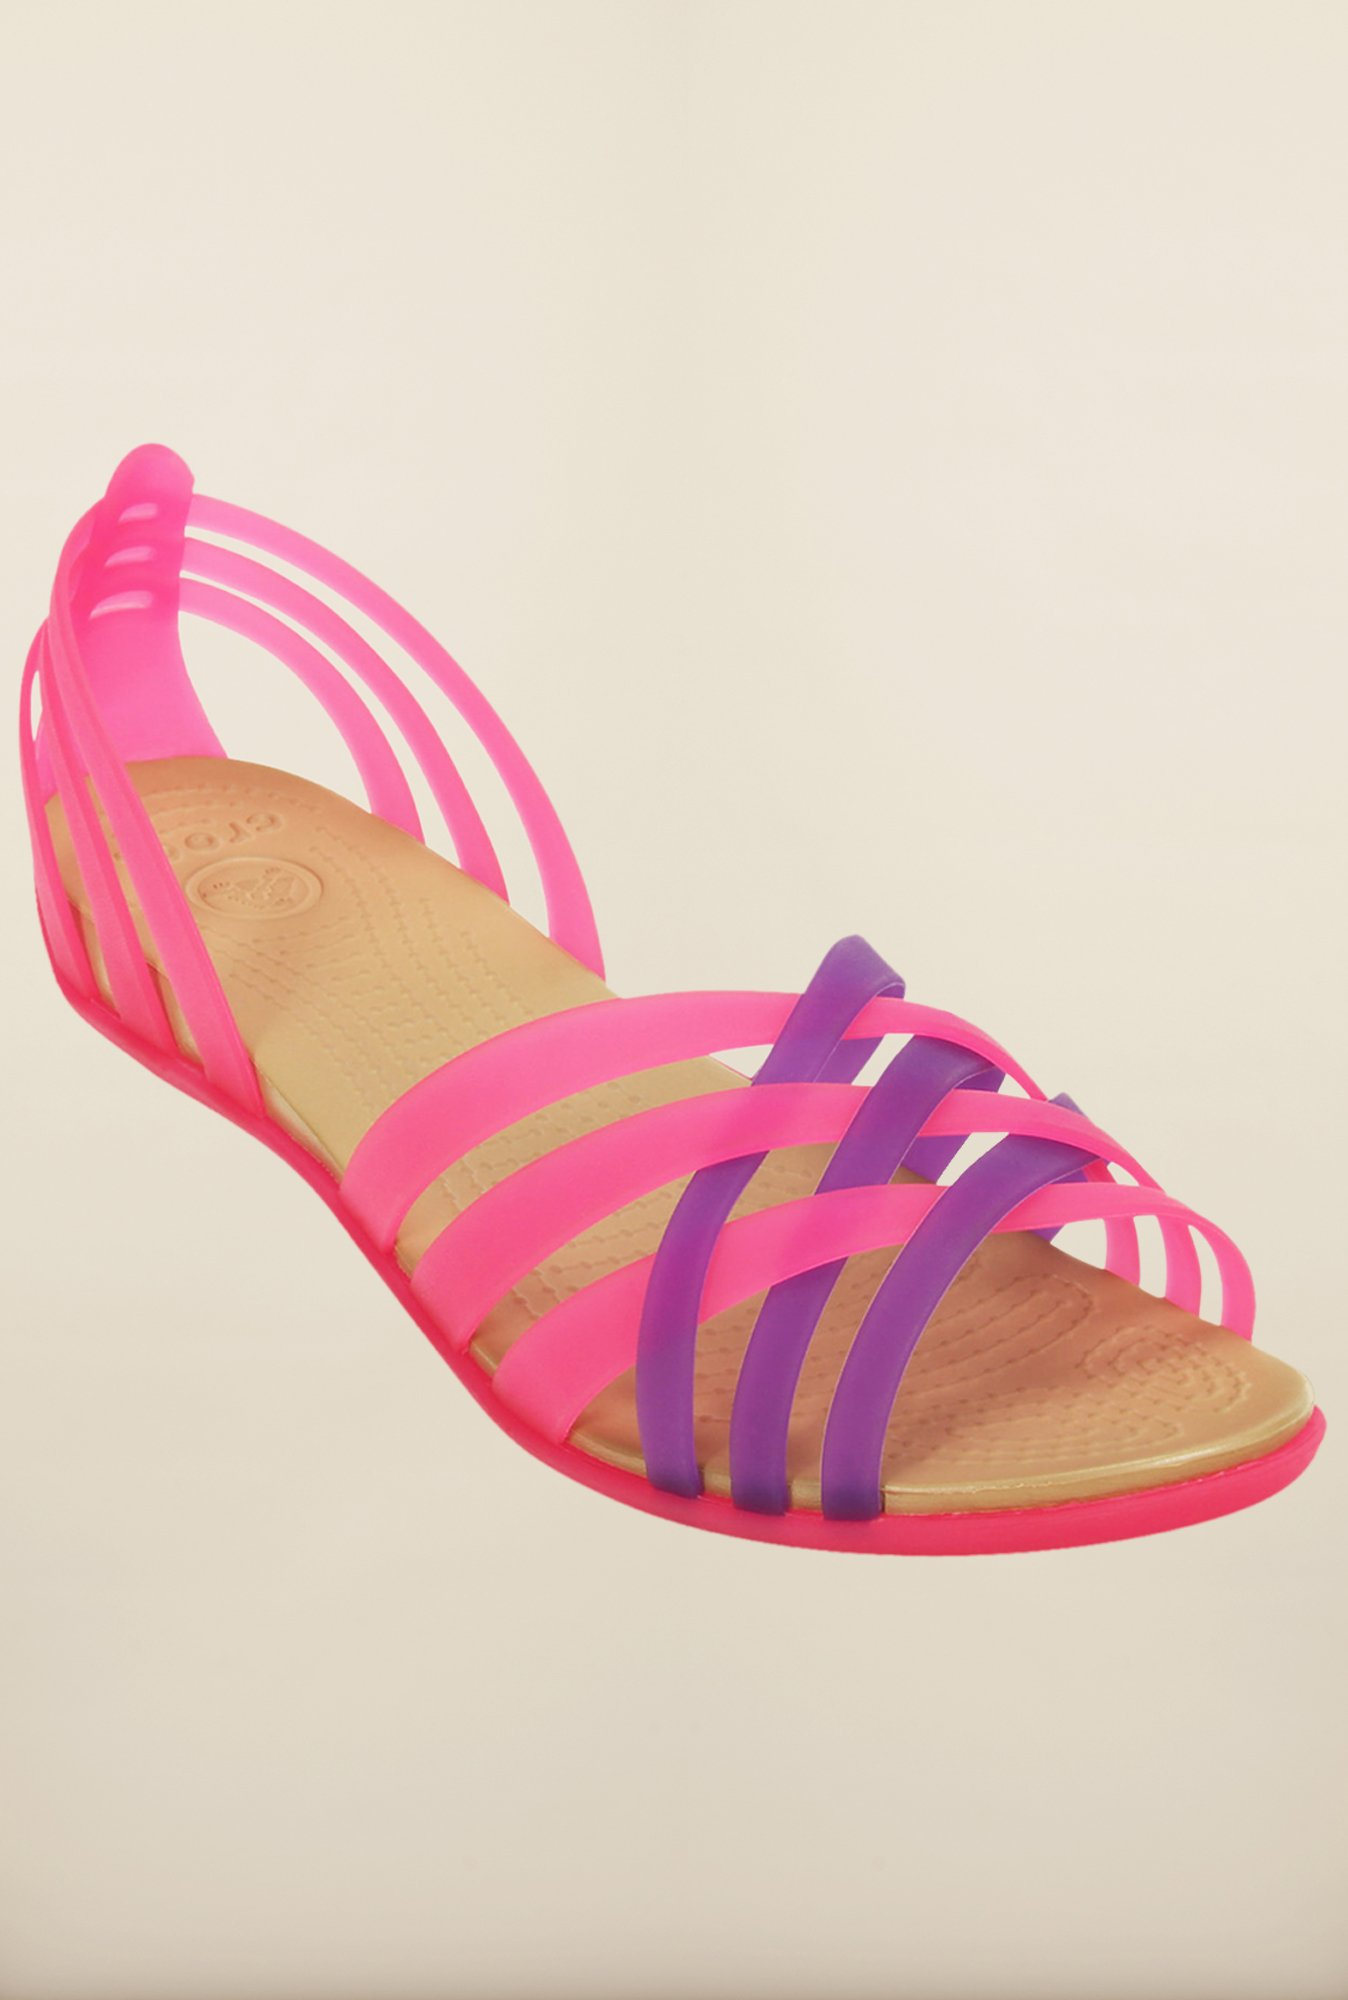 Crocs Huarache Vibrant Pink & Purple Cross Strap Sandals